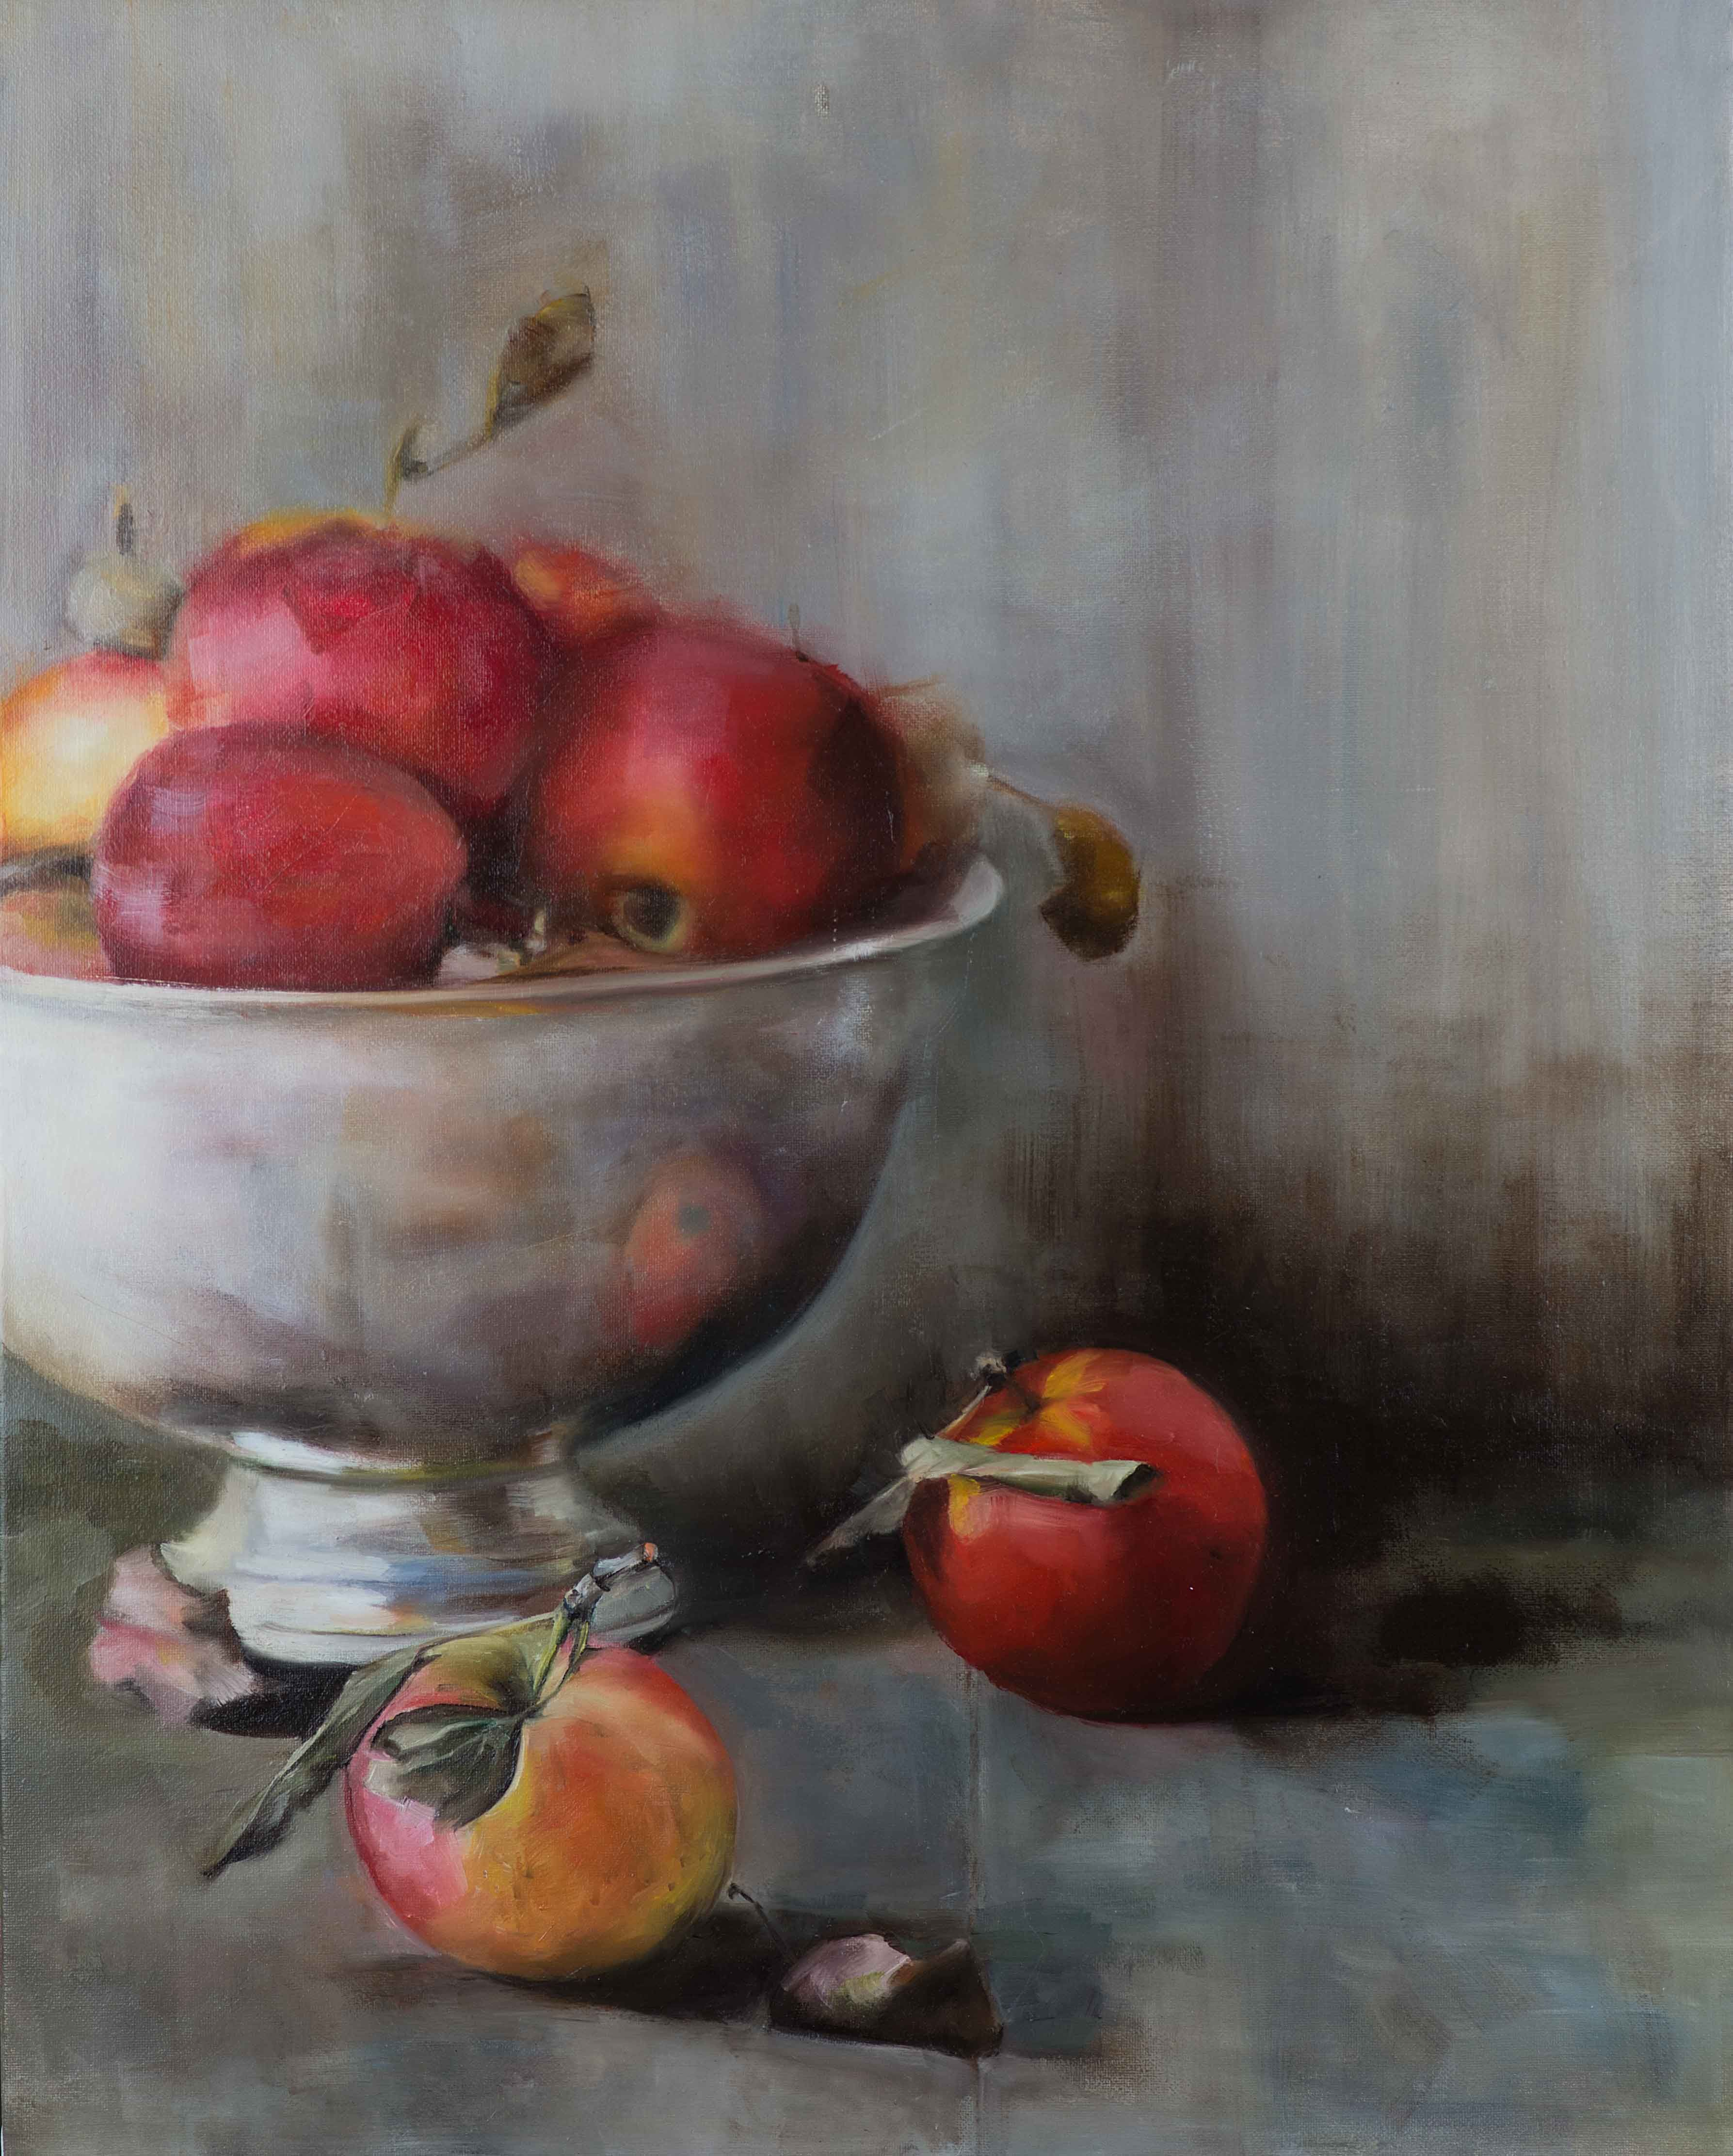 'Apples in Silver Bowl', oil on canvas painting, by artist Trish Ann Mitchell.